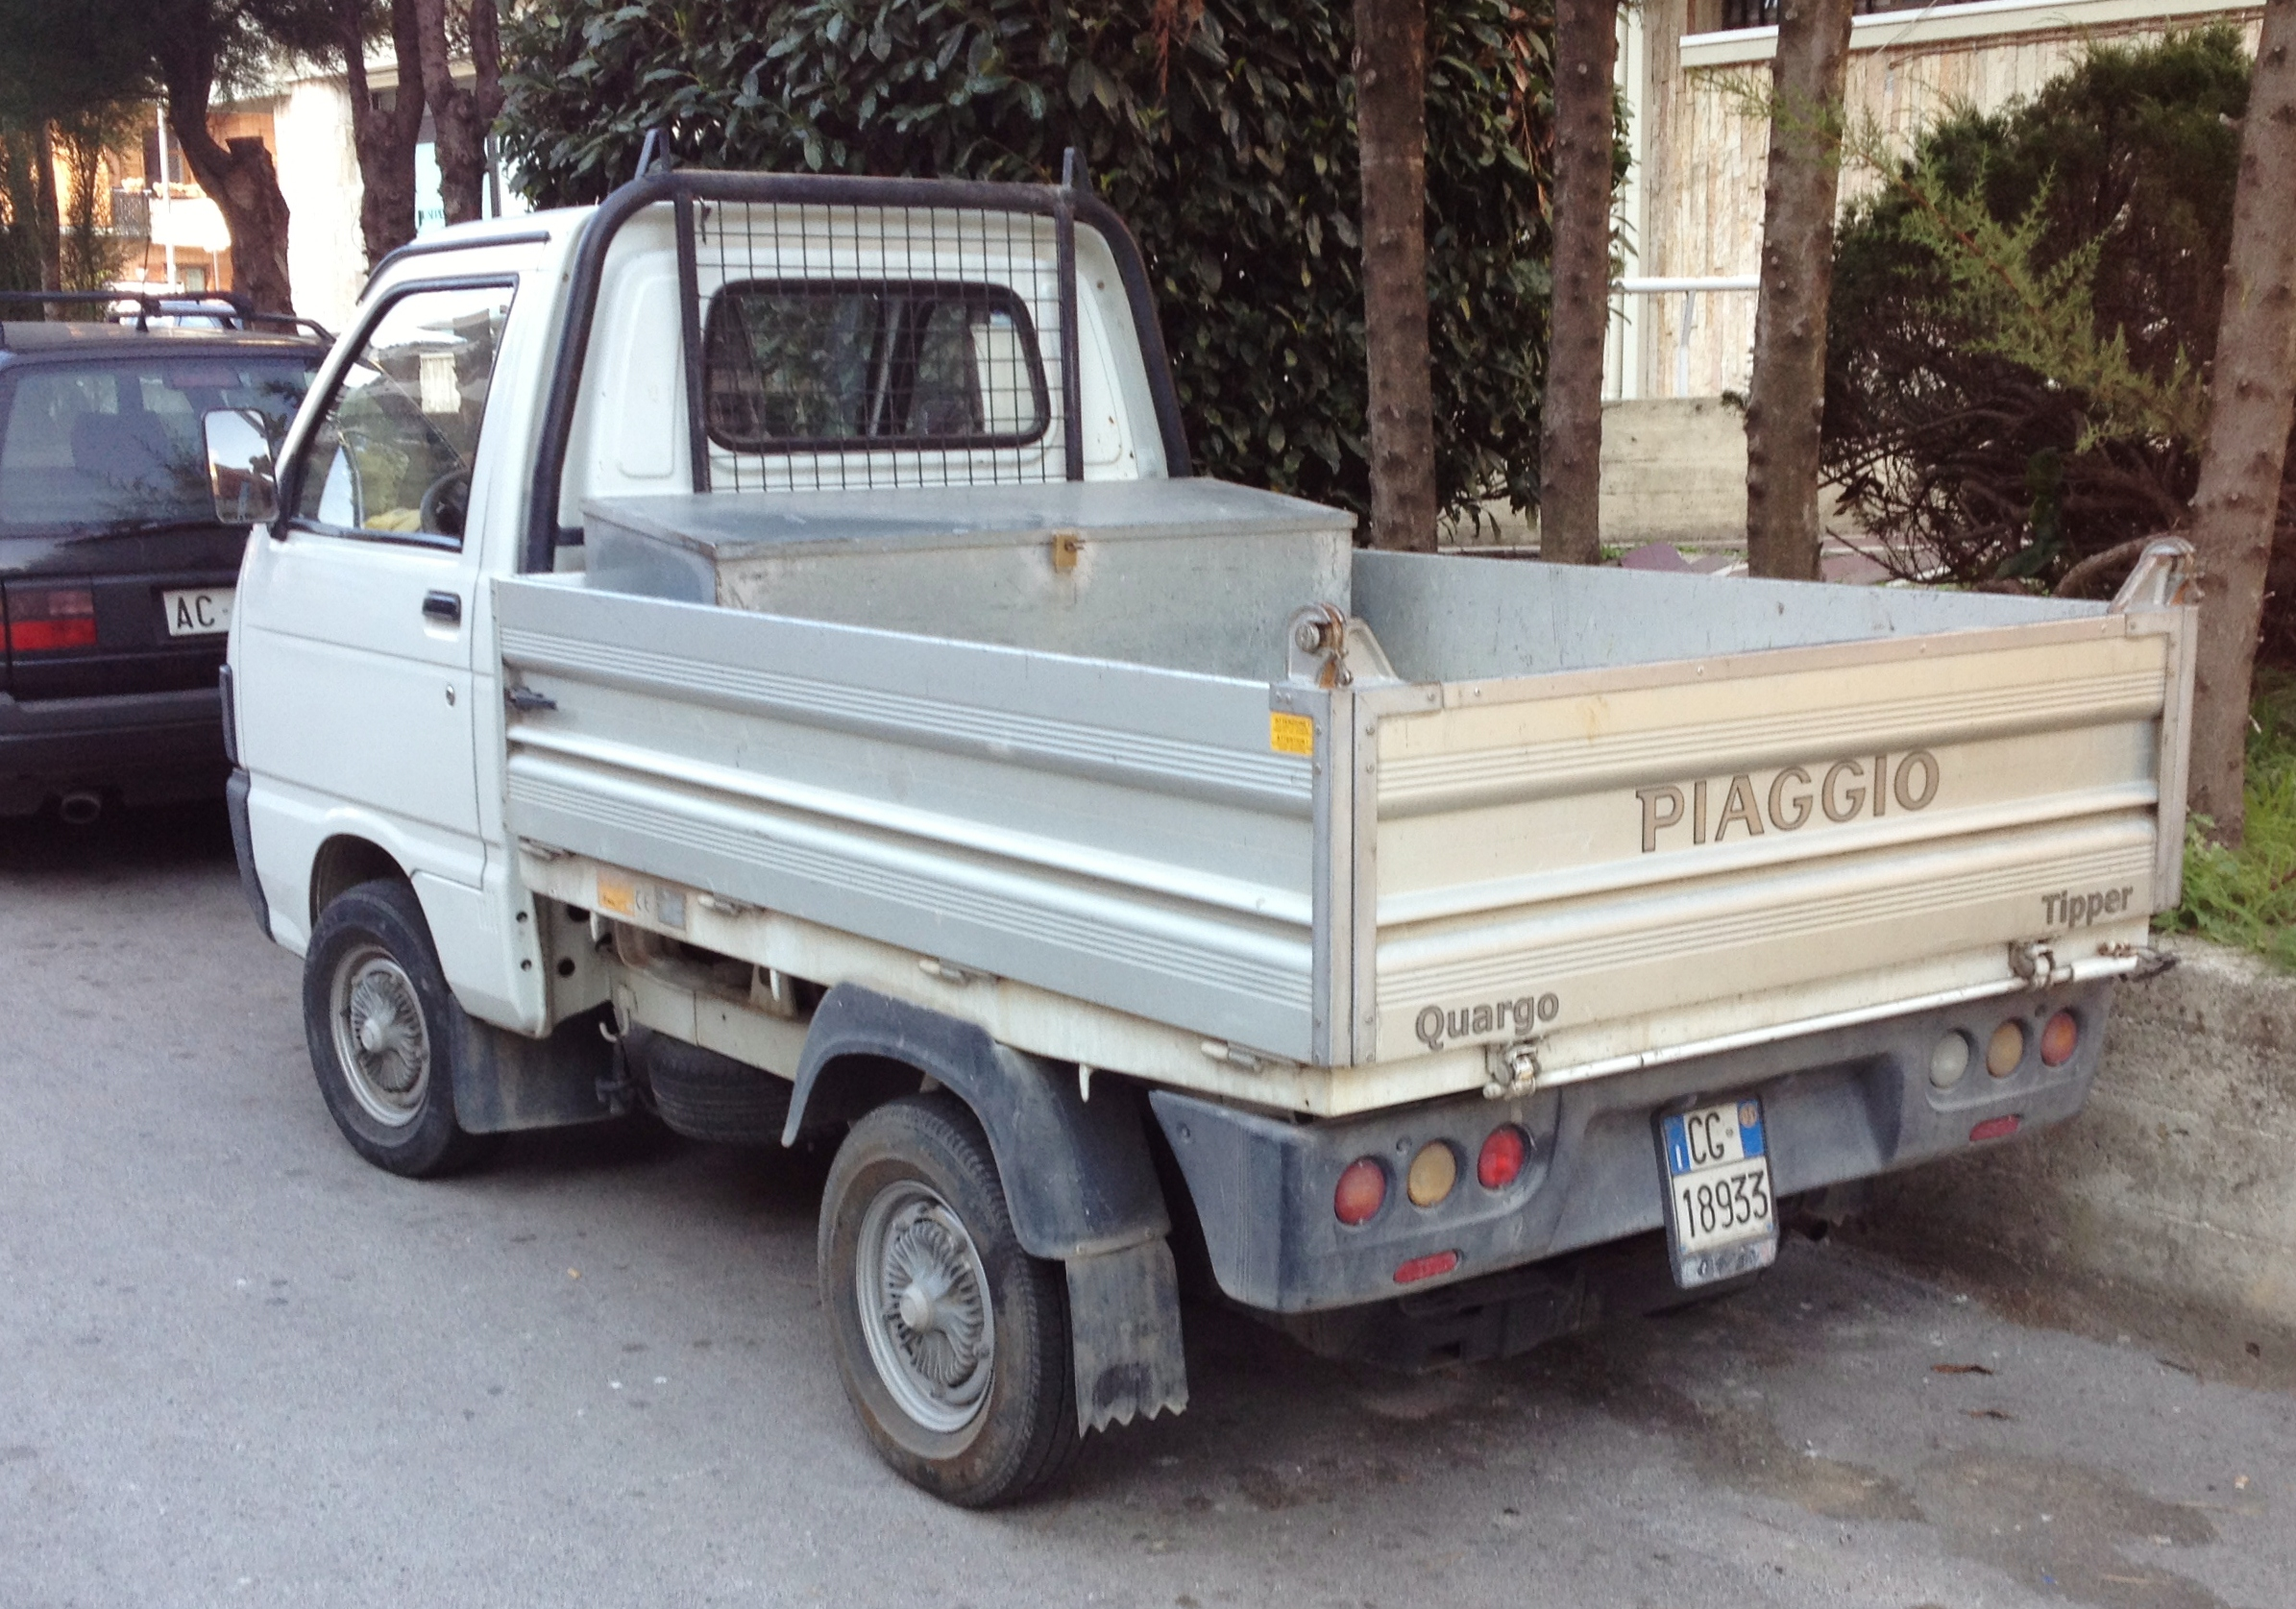 file:piaggio quargo tipper - wikimedia commons